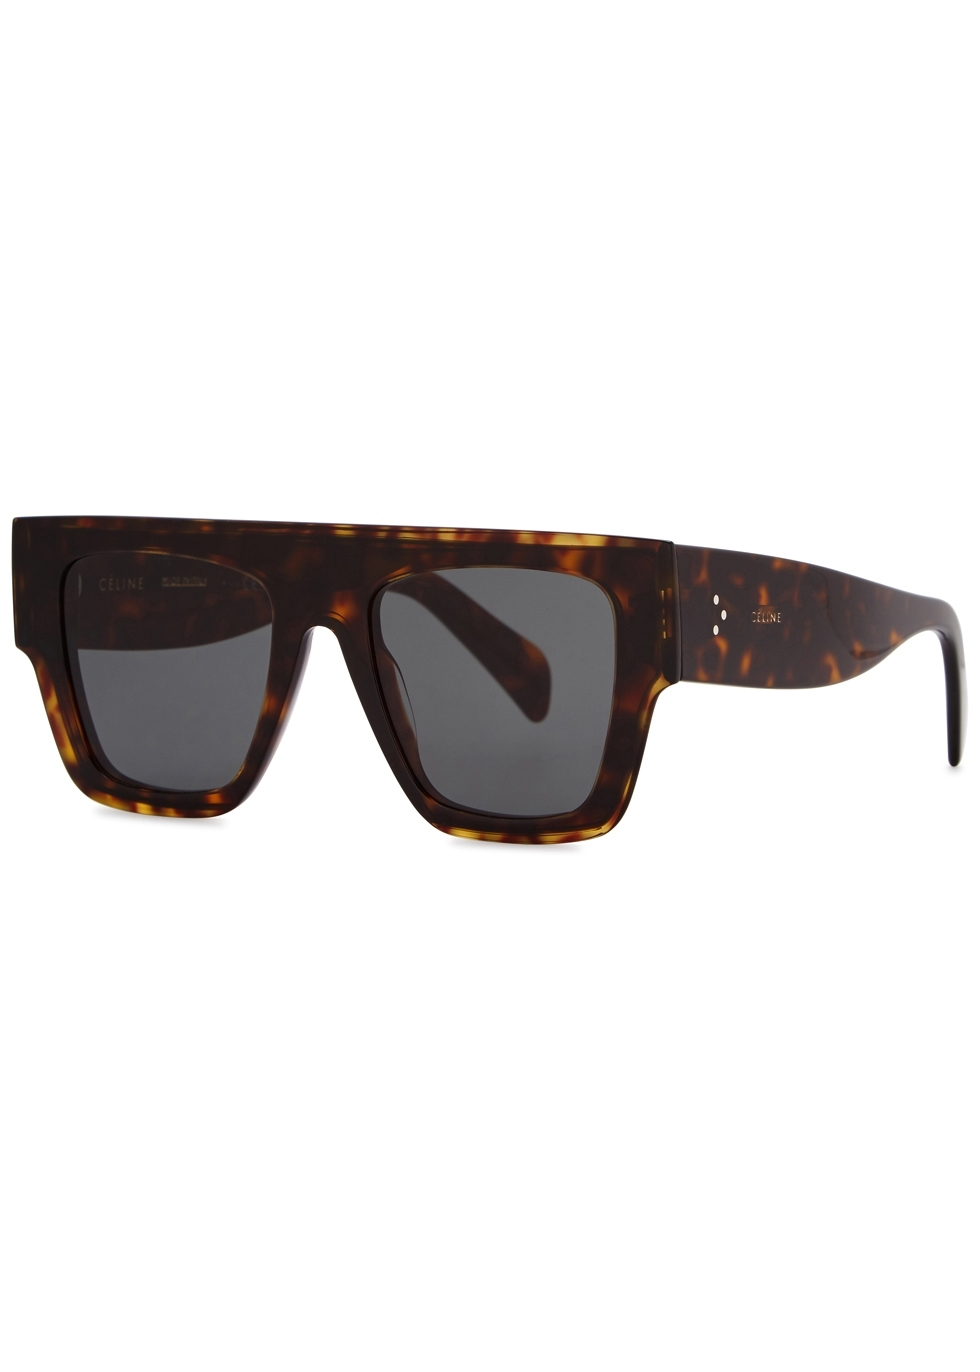 3afac8eba874 Women s Designer Sunglasses and Eyewear - Harvey Nichols